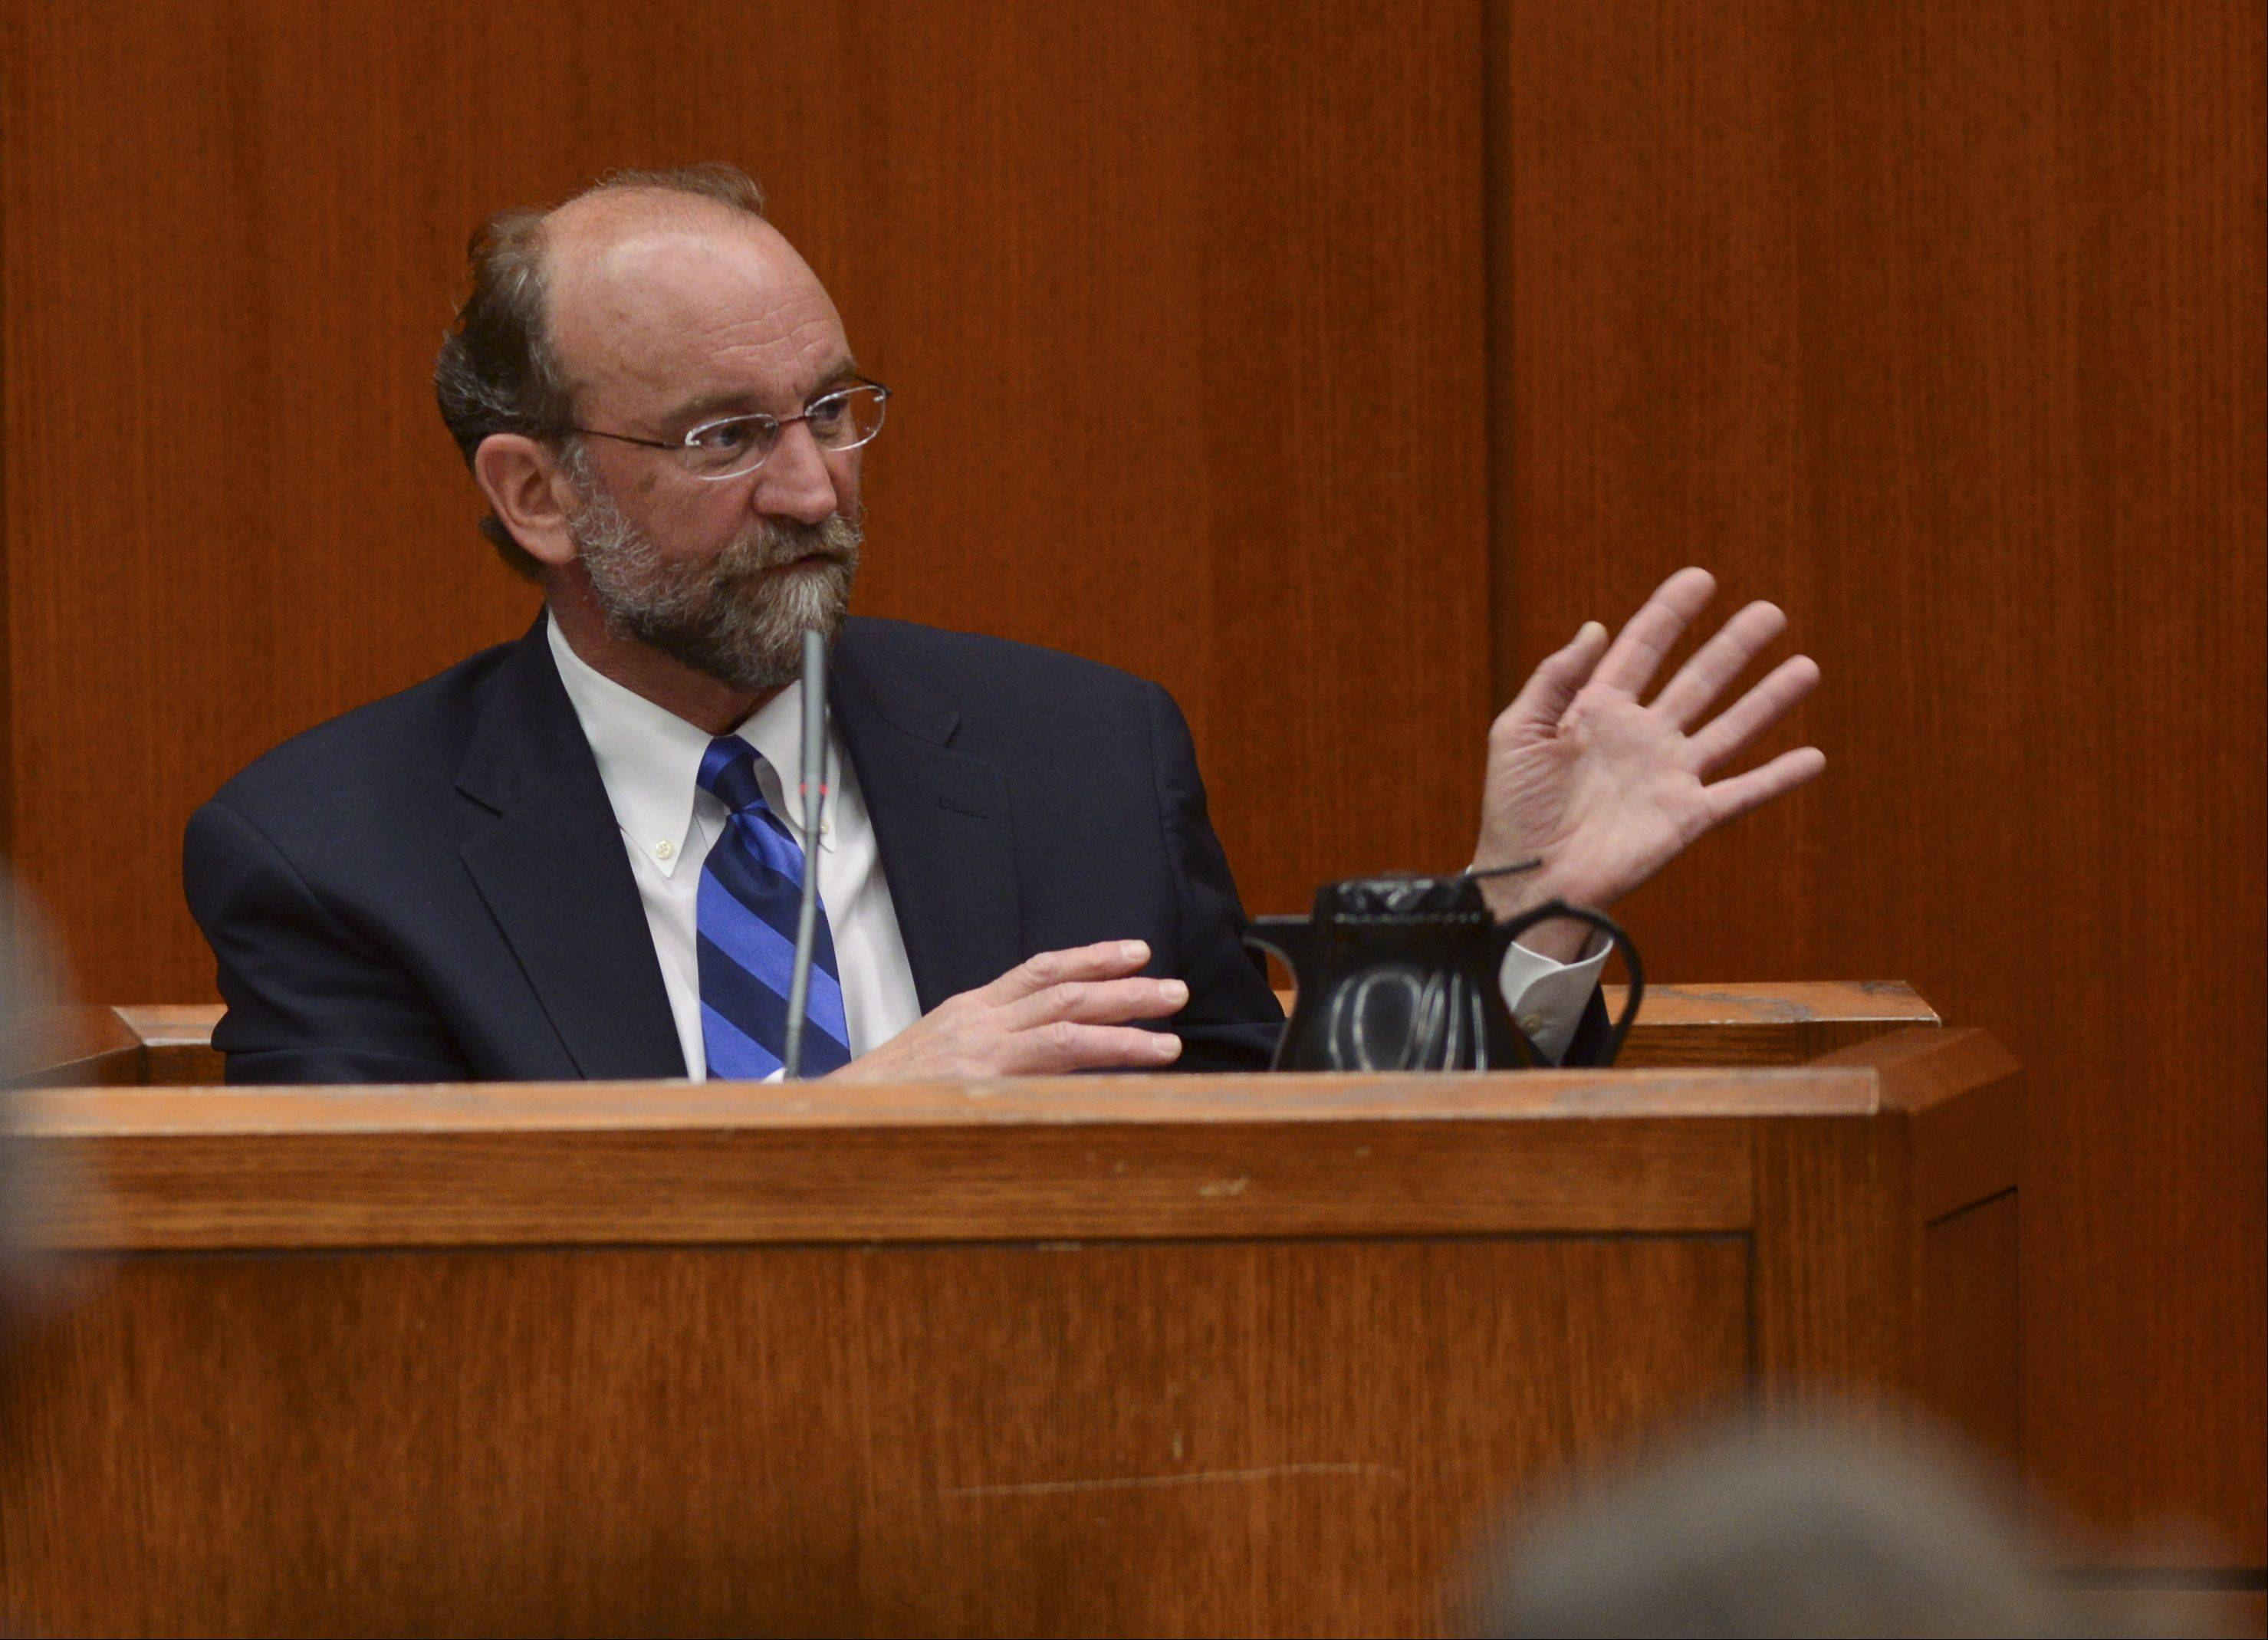 Clinical psychologist Dr. John Murray testifies about the mental state of convicted murderer Jacob Nodarse, during the murder trial of Johnny Borizov at the DuPage County courthouse in Wheaton yesterday.